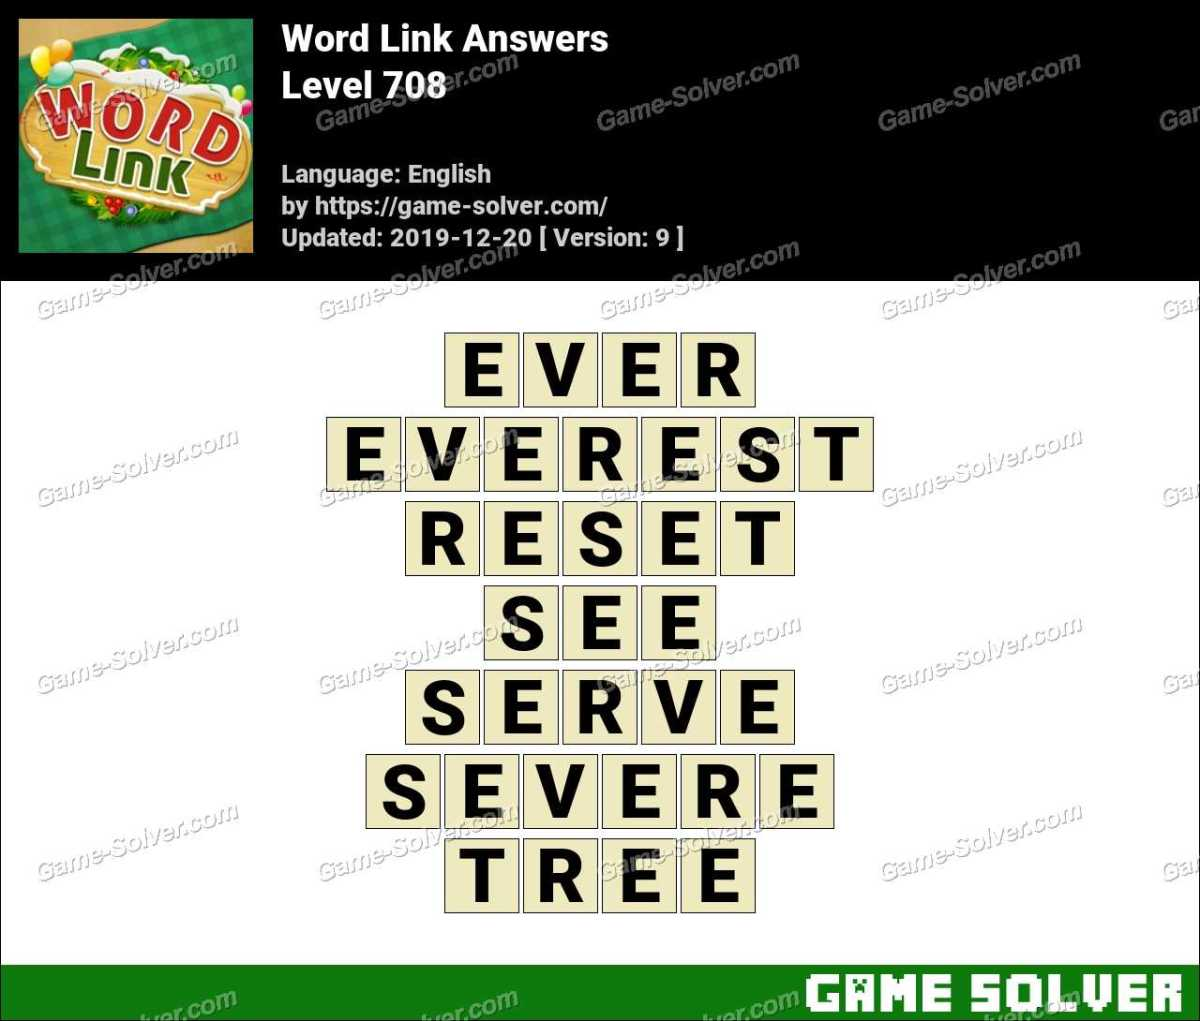 Word Link Level 708 Answers